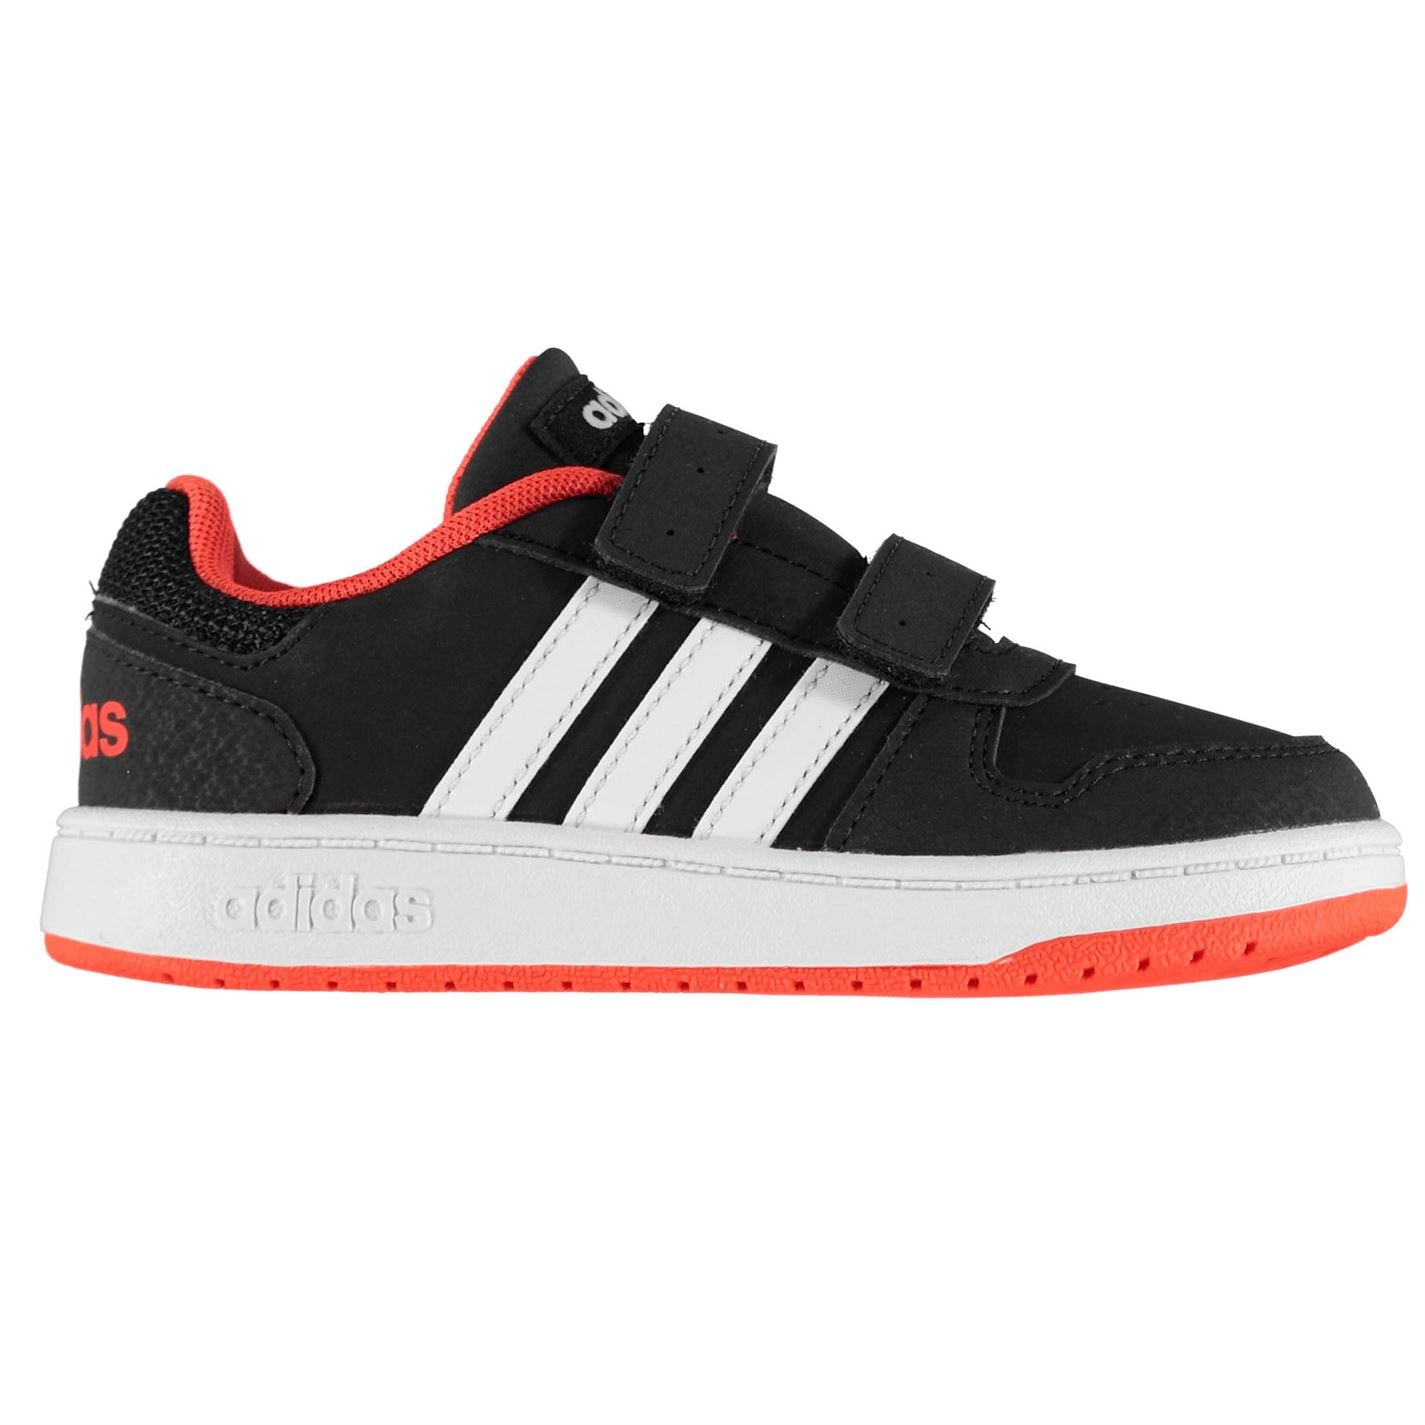 adidas adidas Hoops Infants Trainers Black/Wht/Red